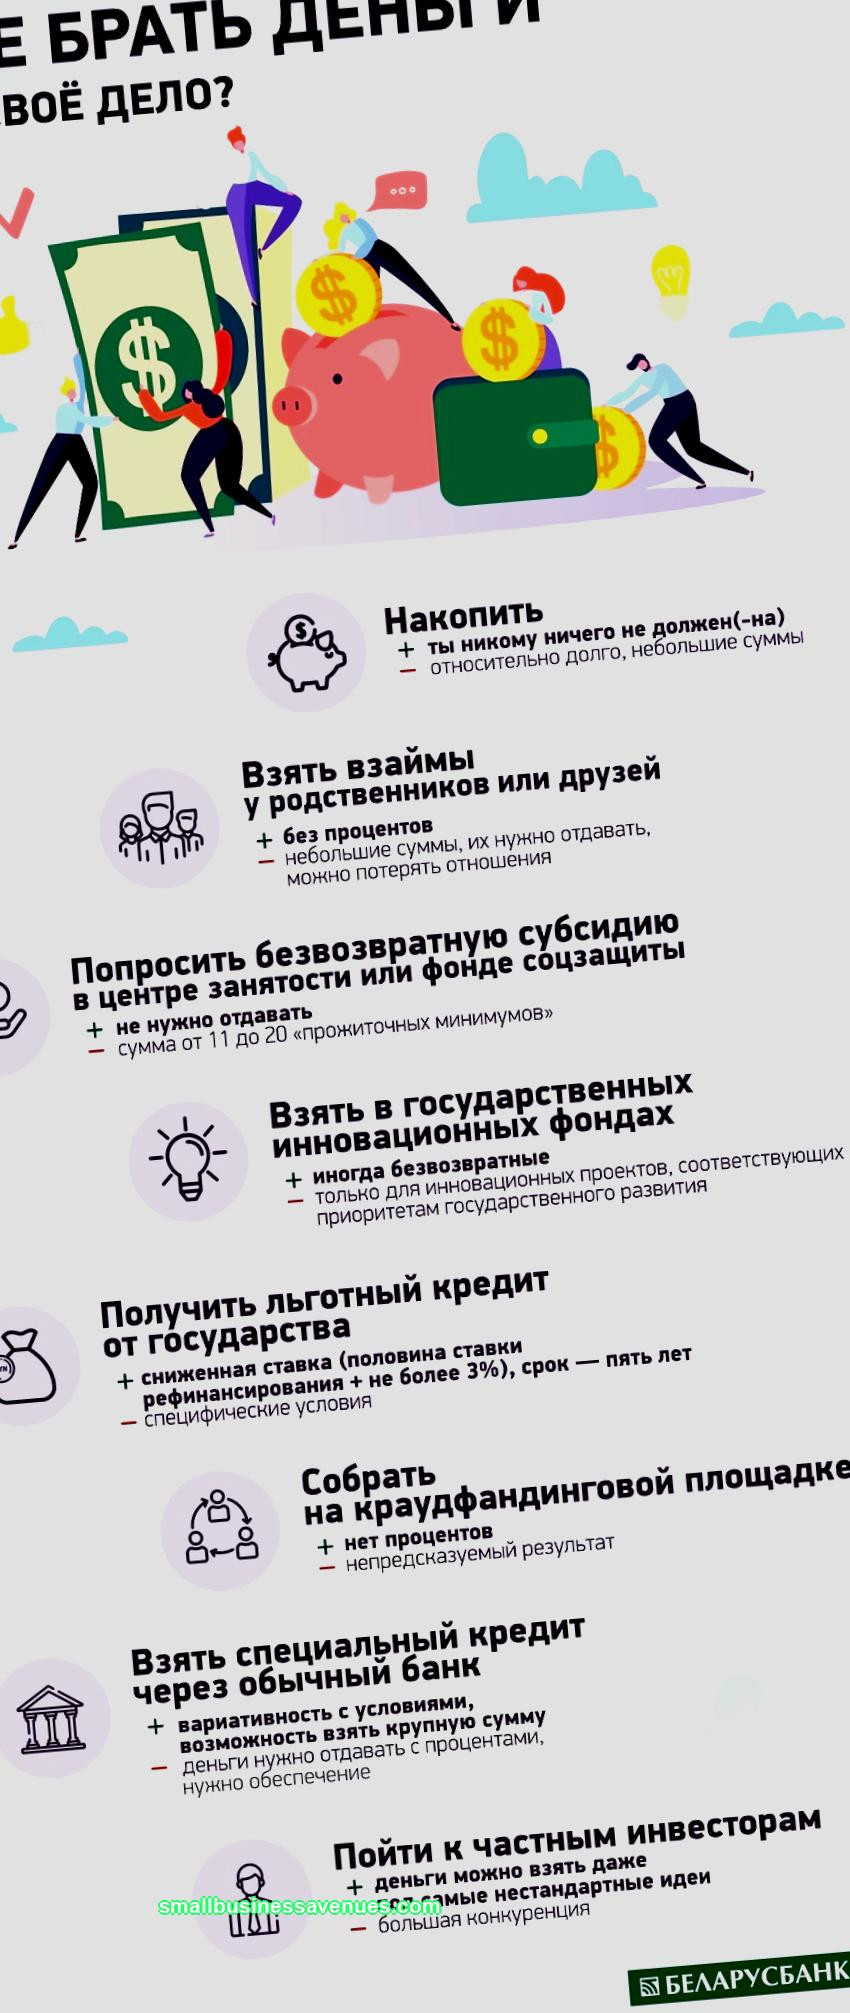 One of the most important questions not only for the average Belarusian, but also for an ordinary entrepreneur with a burning idea. If the dreaming about his business has not received an inheritance or won the lottery, then you have to find funds yourself. Where can they help young and start with finances?